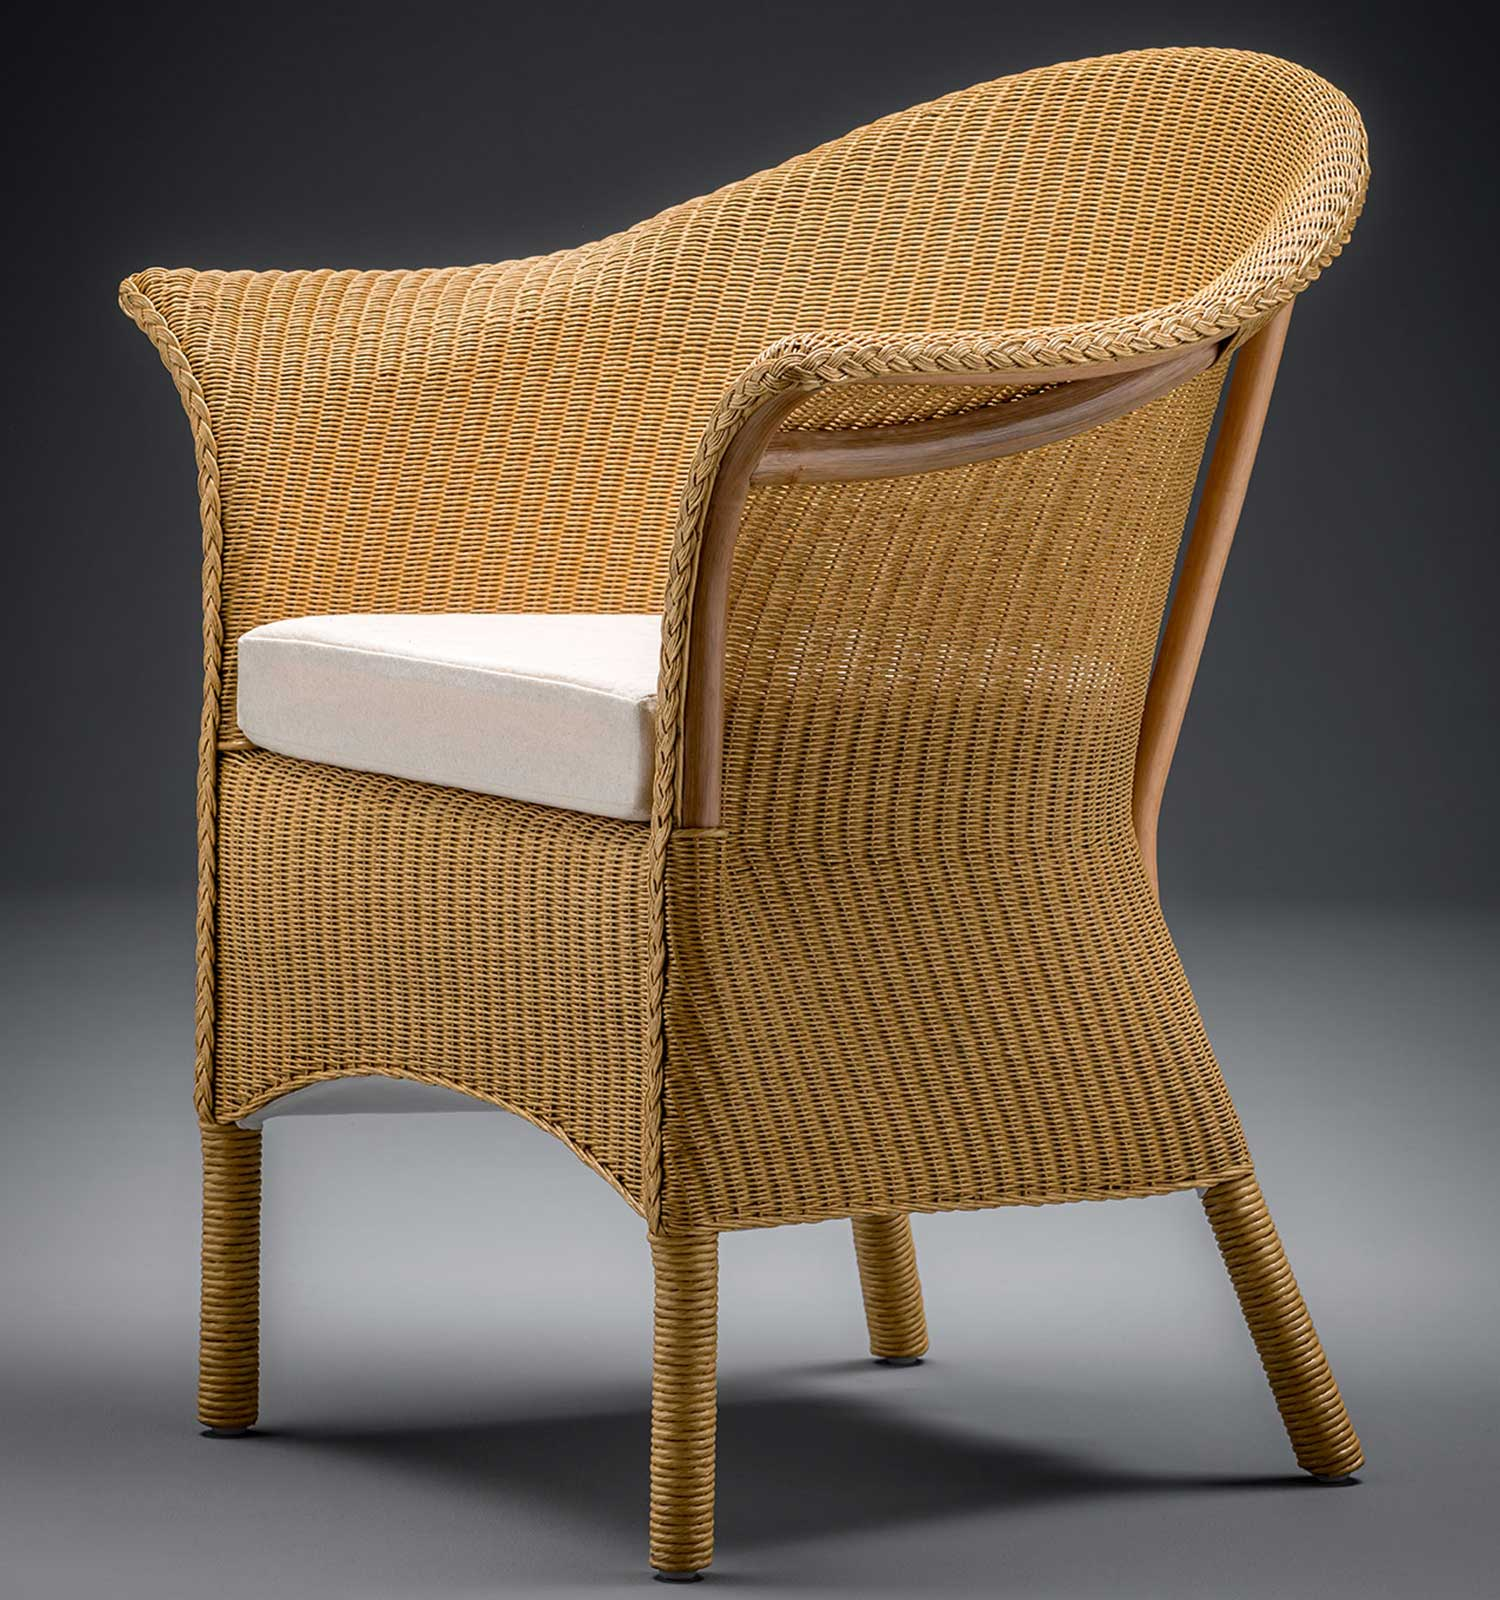 montpellier chair buy lloyd loom chairs online lloyd looms. Black Bedroom Furniture Sets. Home Design Ideas